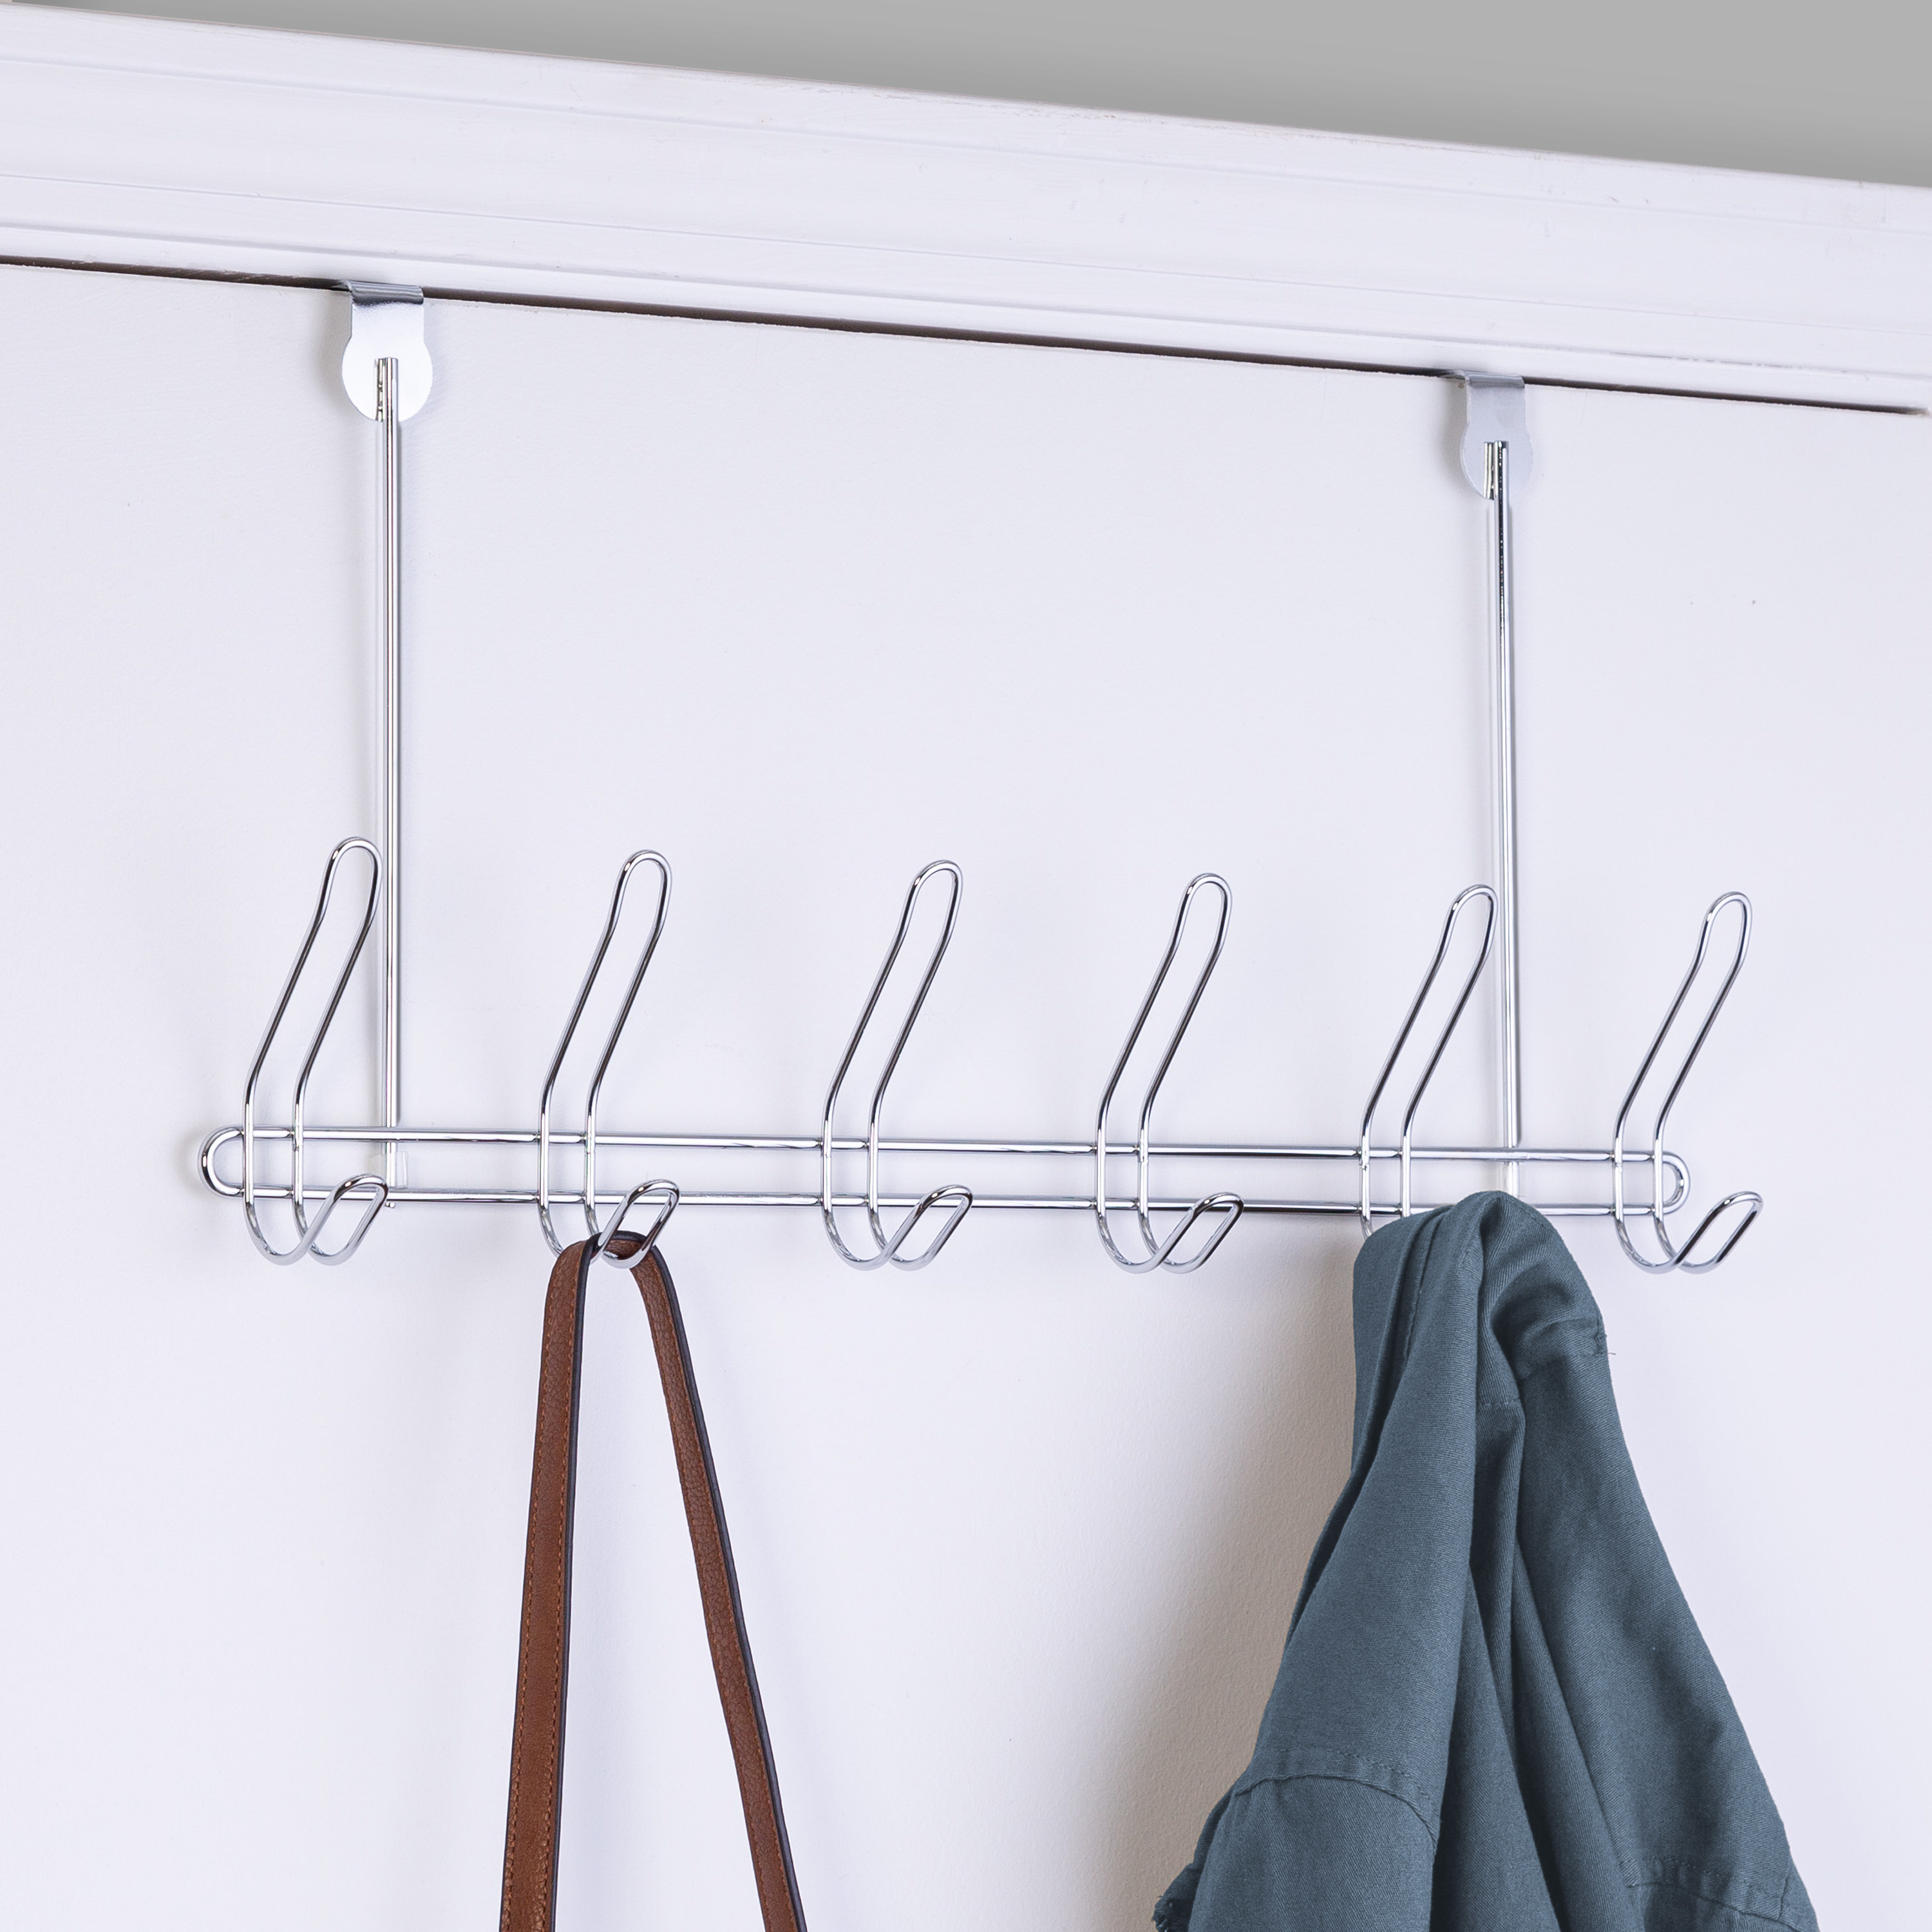 over the door stainless steel hanger with six racks to hold purses and coats